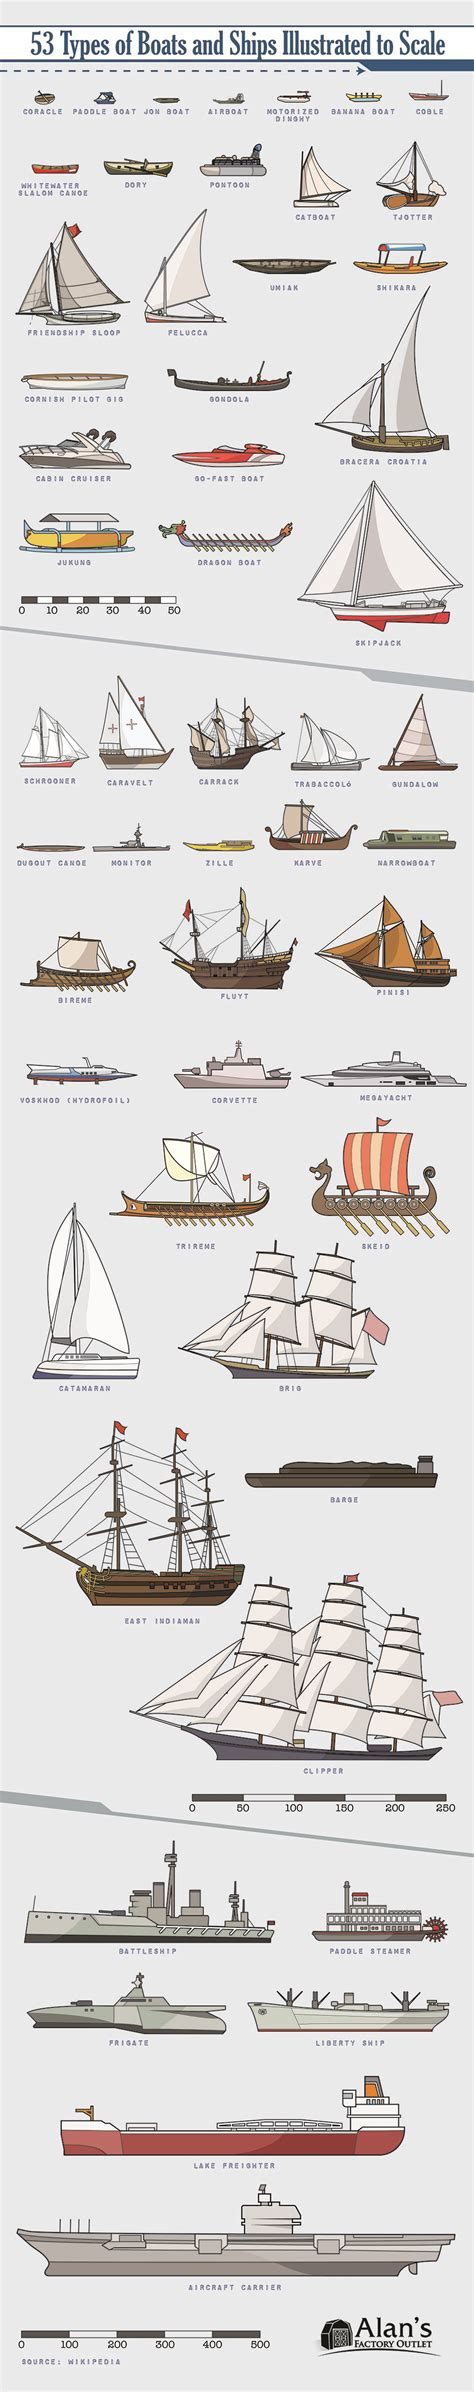 type of boat or ship 53 types of boats and ships illustrated to scale